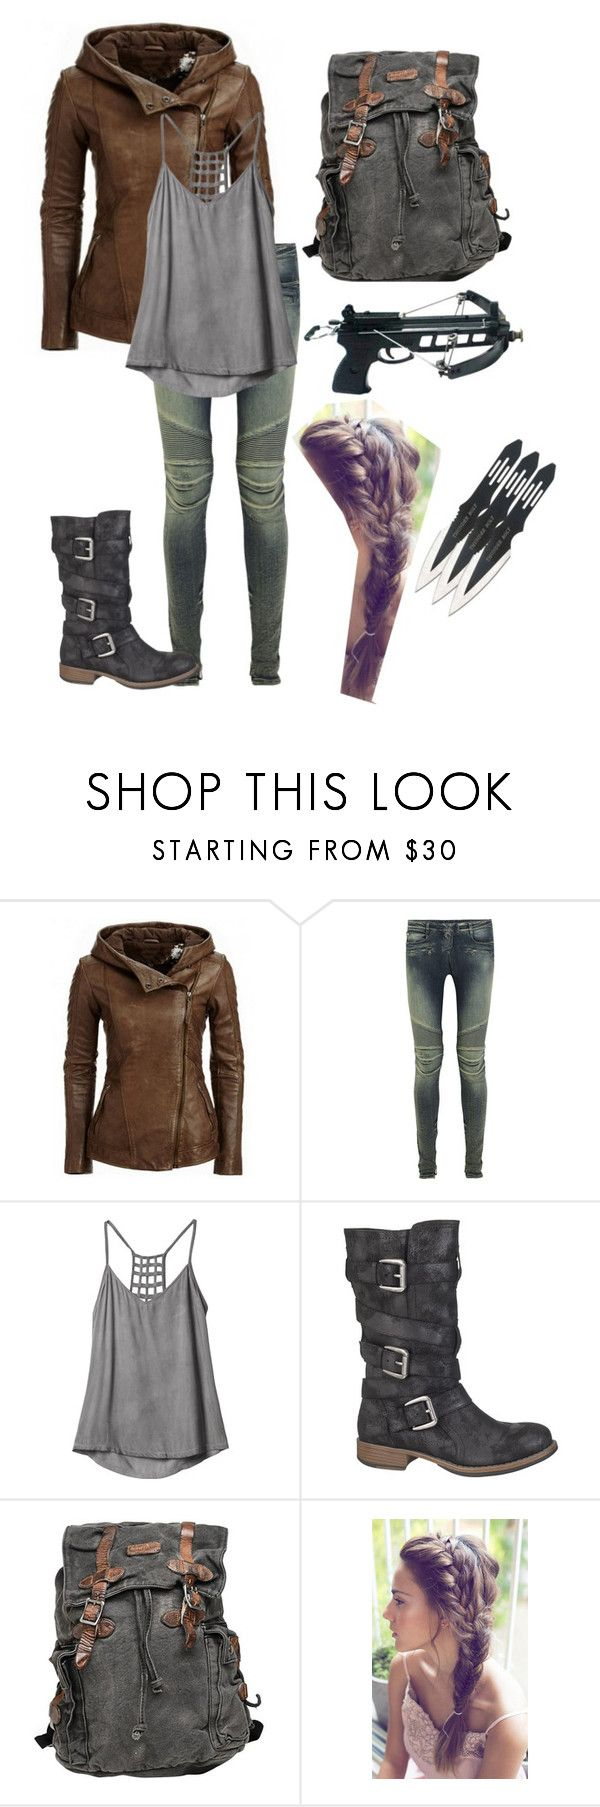 """Post apocalyptic inspired outfit"" by lexi-tolhurst ❤ liked on Polyvore featuring Balmain, RVCA, maurices, Bed